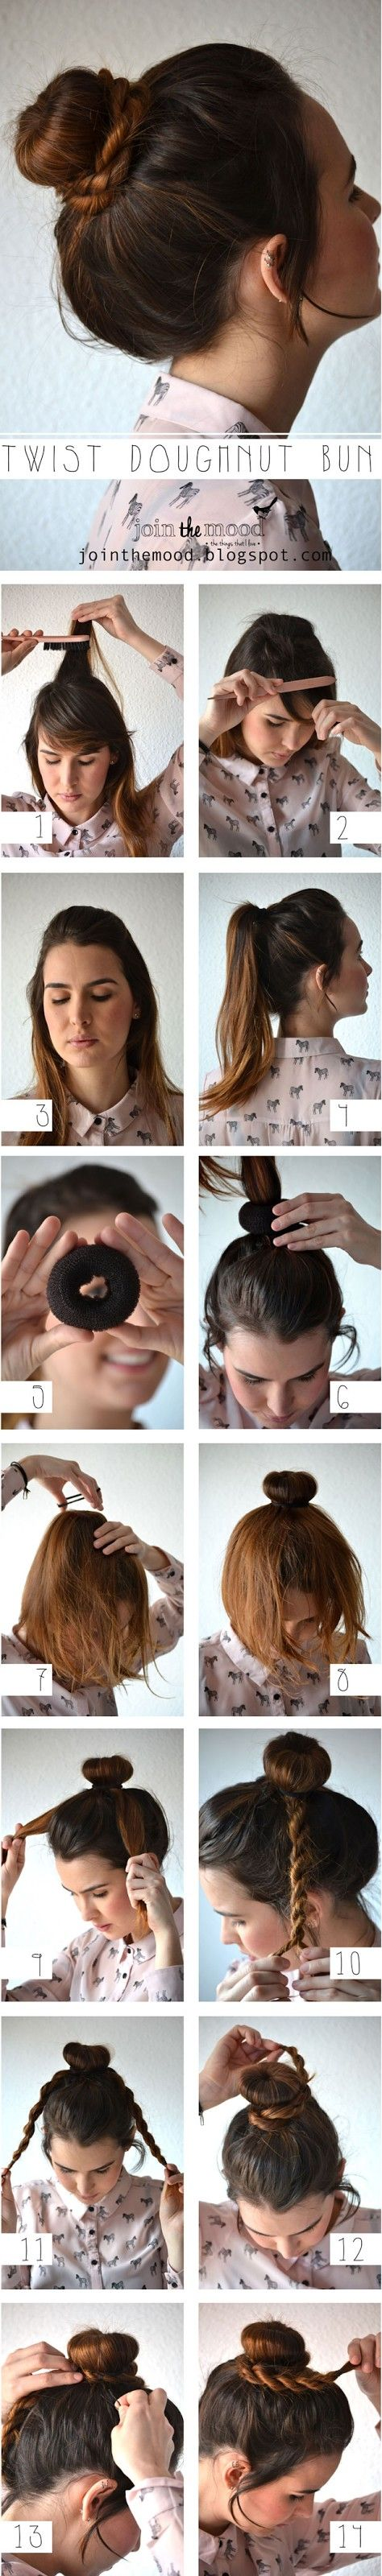 How to make the twist doughnut bun